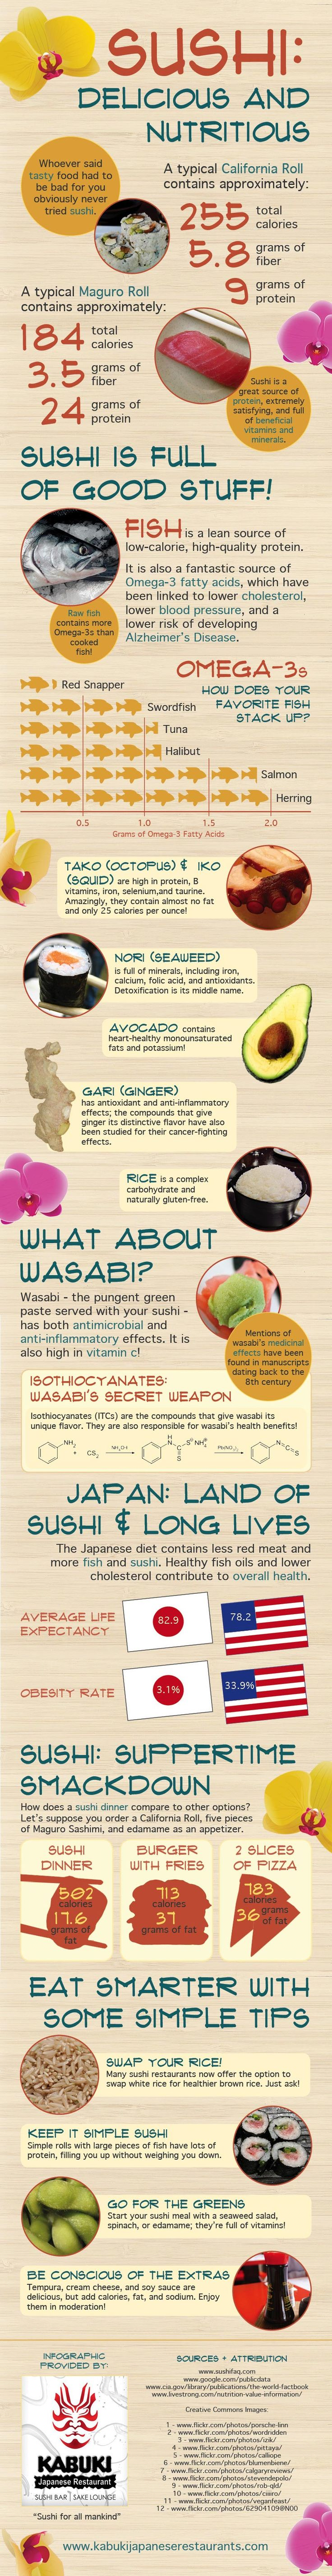 Sushi-Infographic I love sushi and this graphic explains why we should eat more sushi.